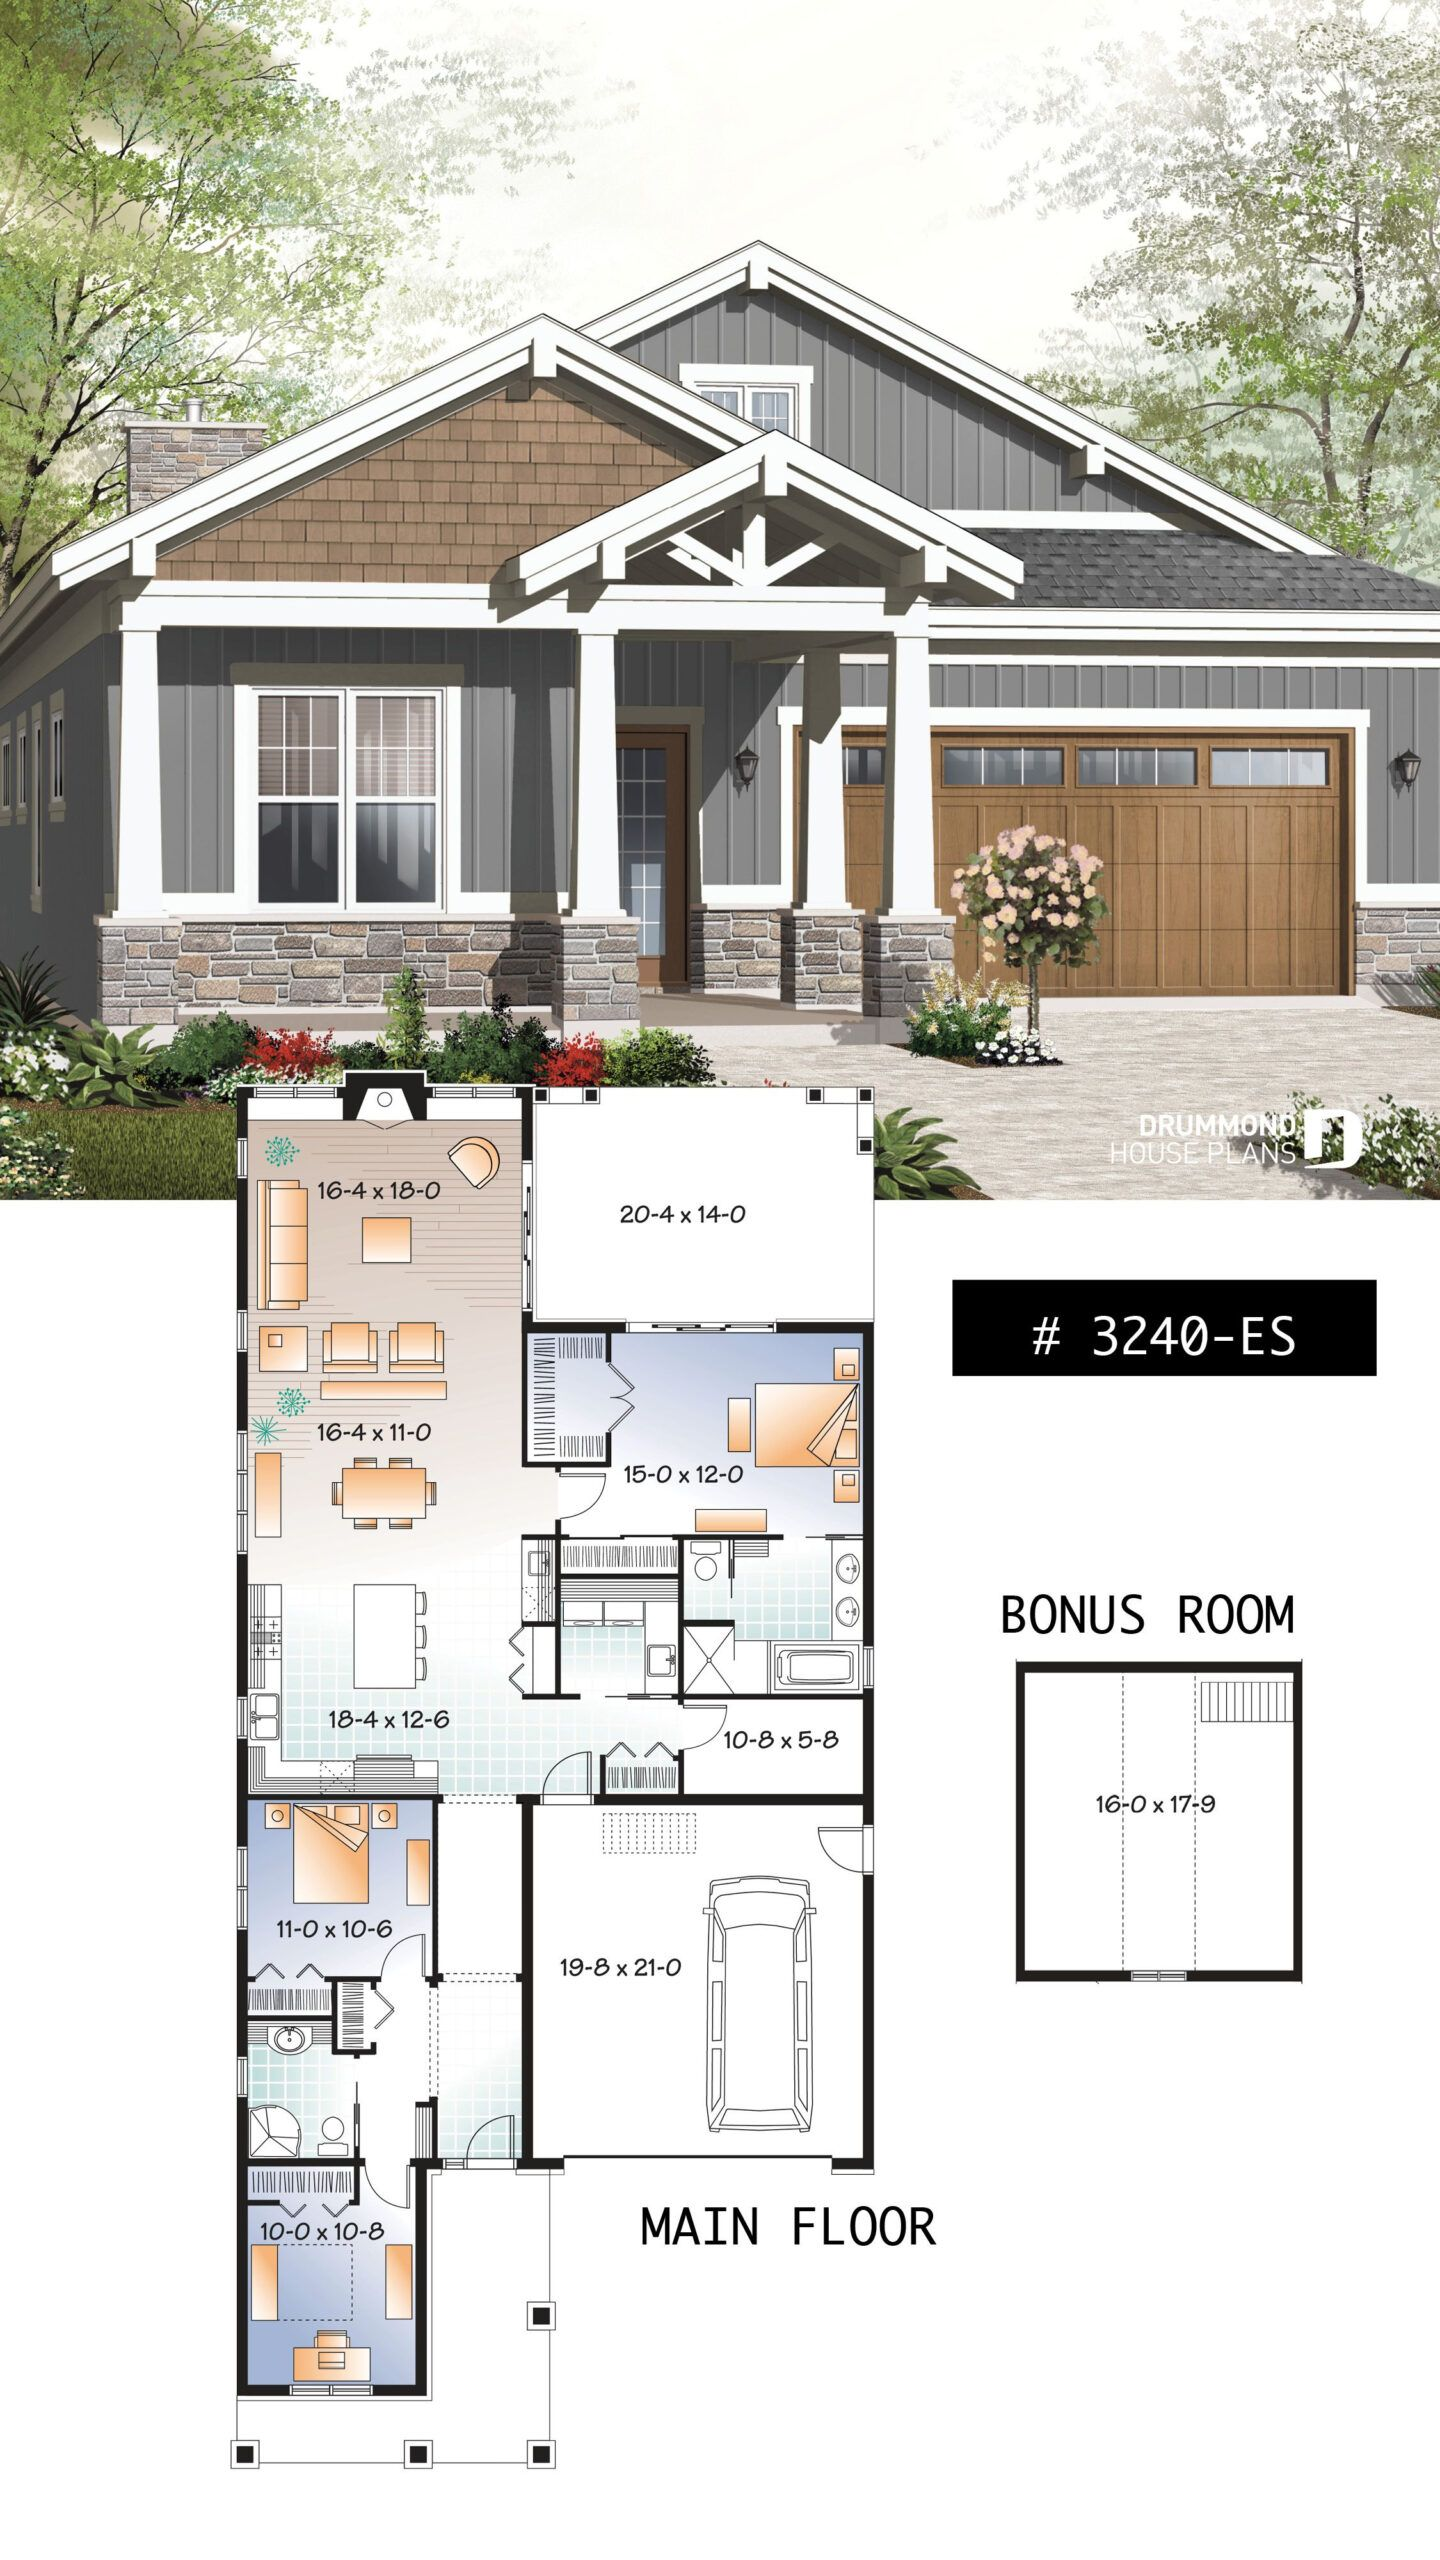 Bungalow House Plans With Terrace In 2020 Craftsman Bungalow House Plans Bungalow Floor Plans Craftsman House Plans